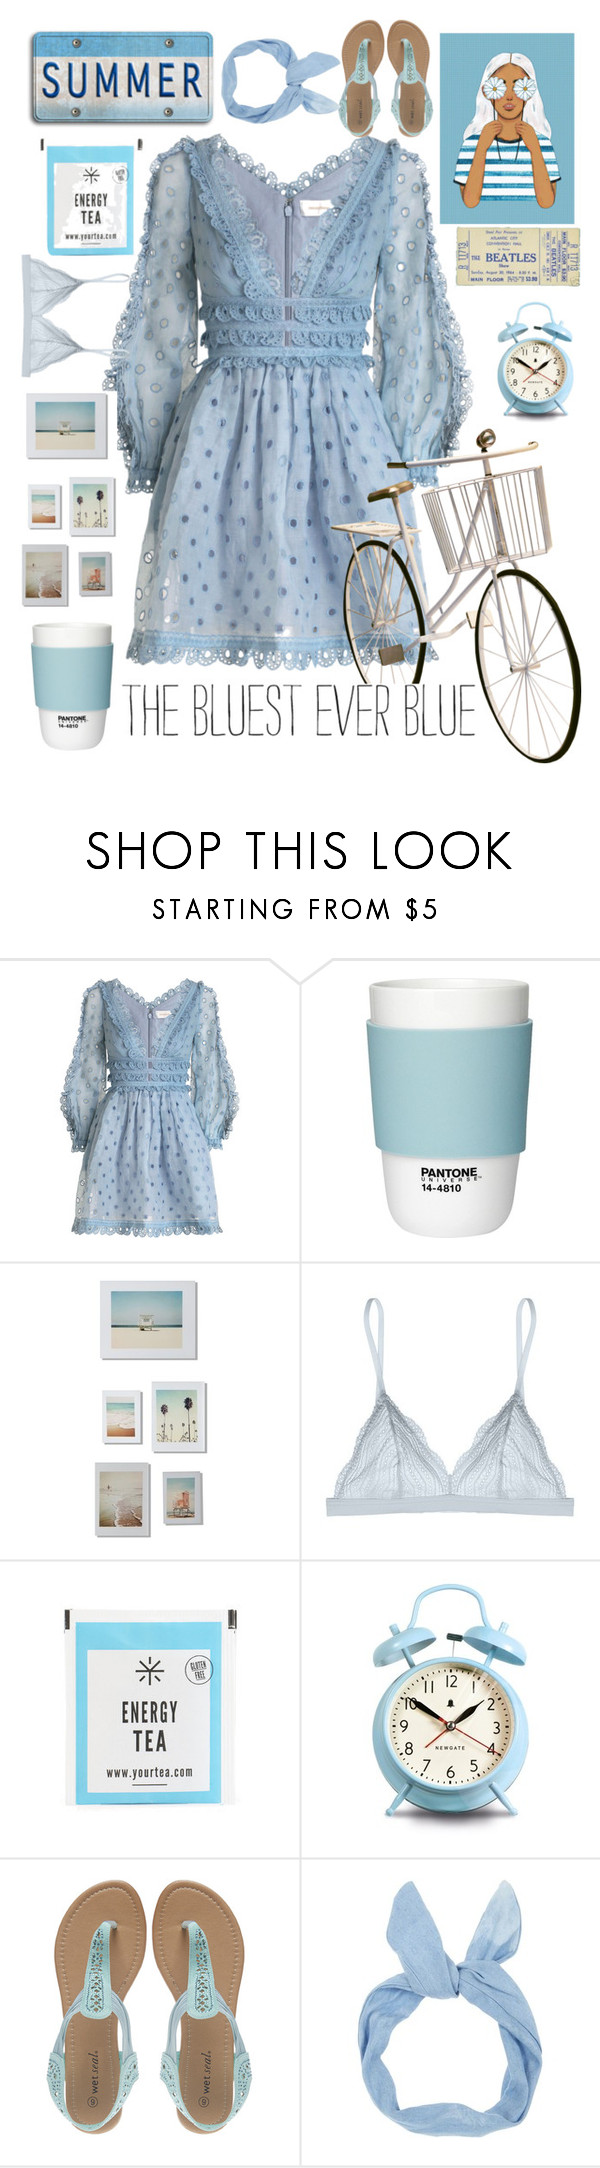 """Bluest Summers Day"" by alongcametwiggy ❤ liked on Polyvore featuring Zimmermann, Pantone, DENY Designs, Cosabella, Newgate and Wet Seal"